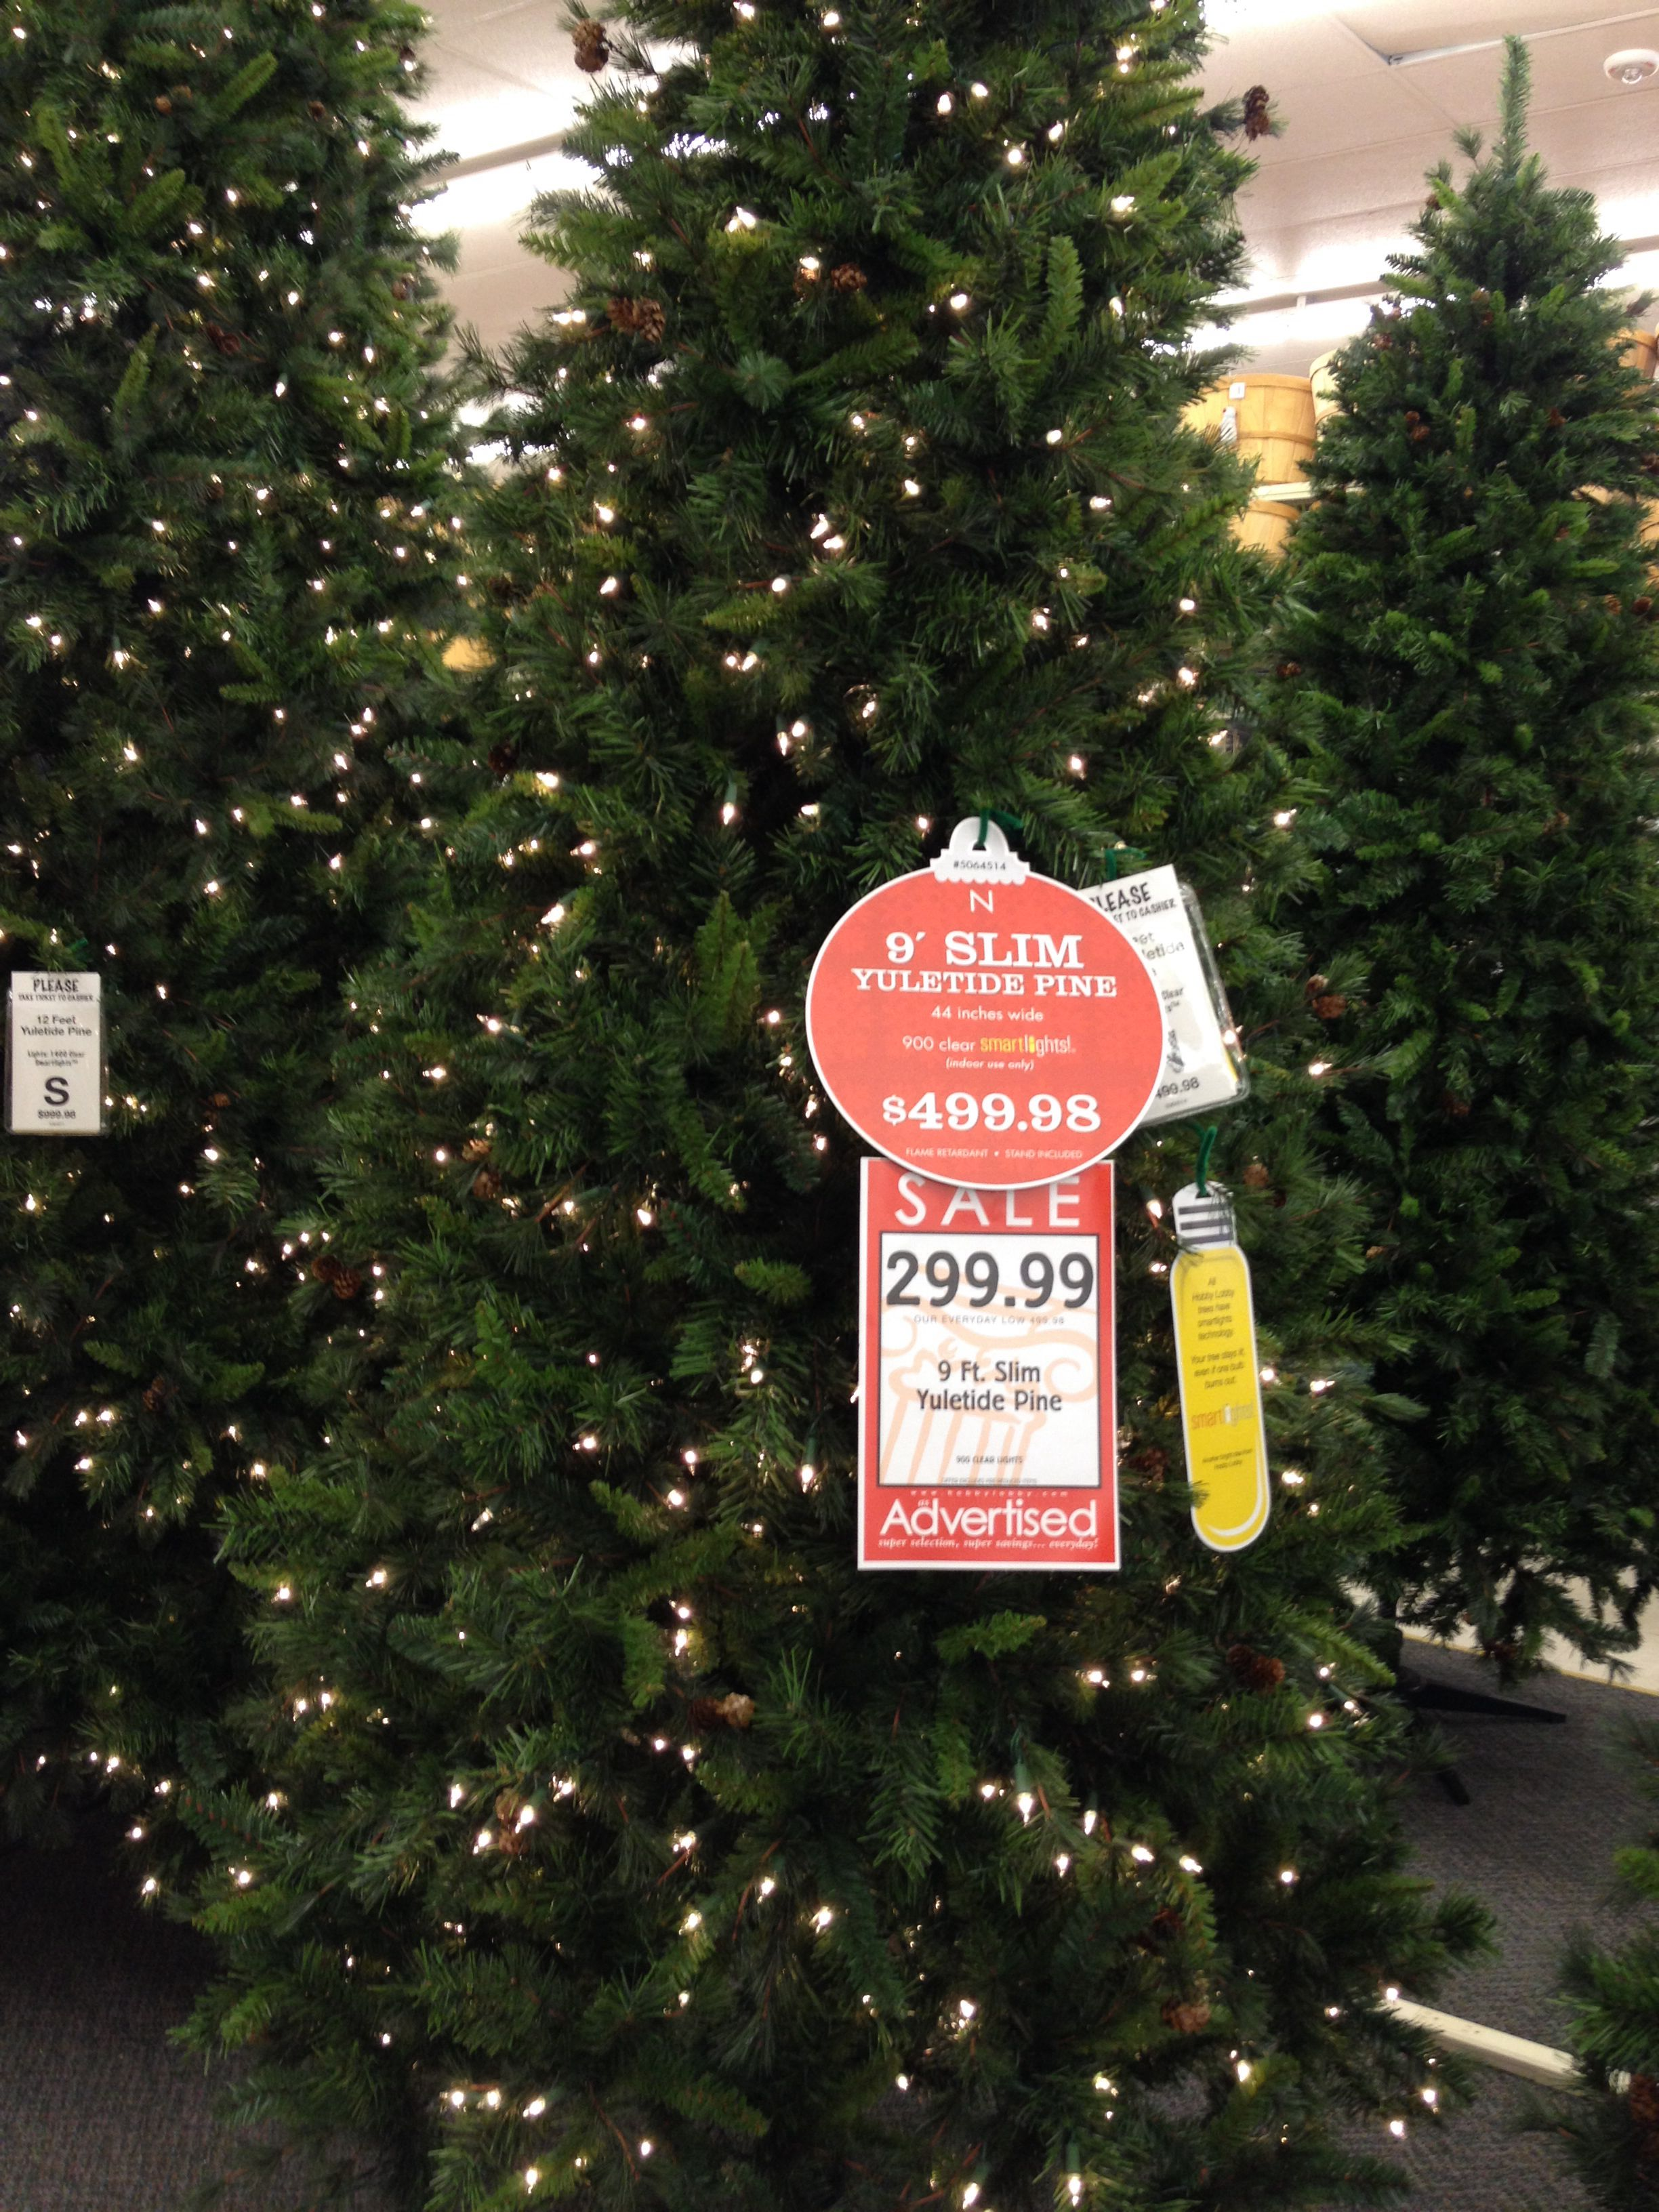 9 ft prelit christmas tree at hobby lobby